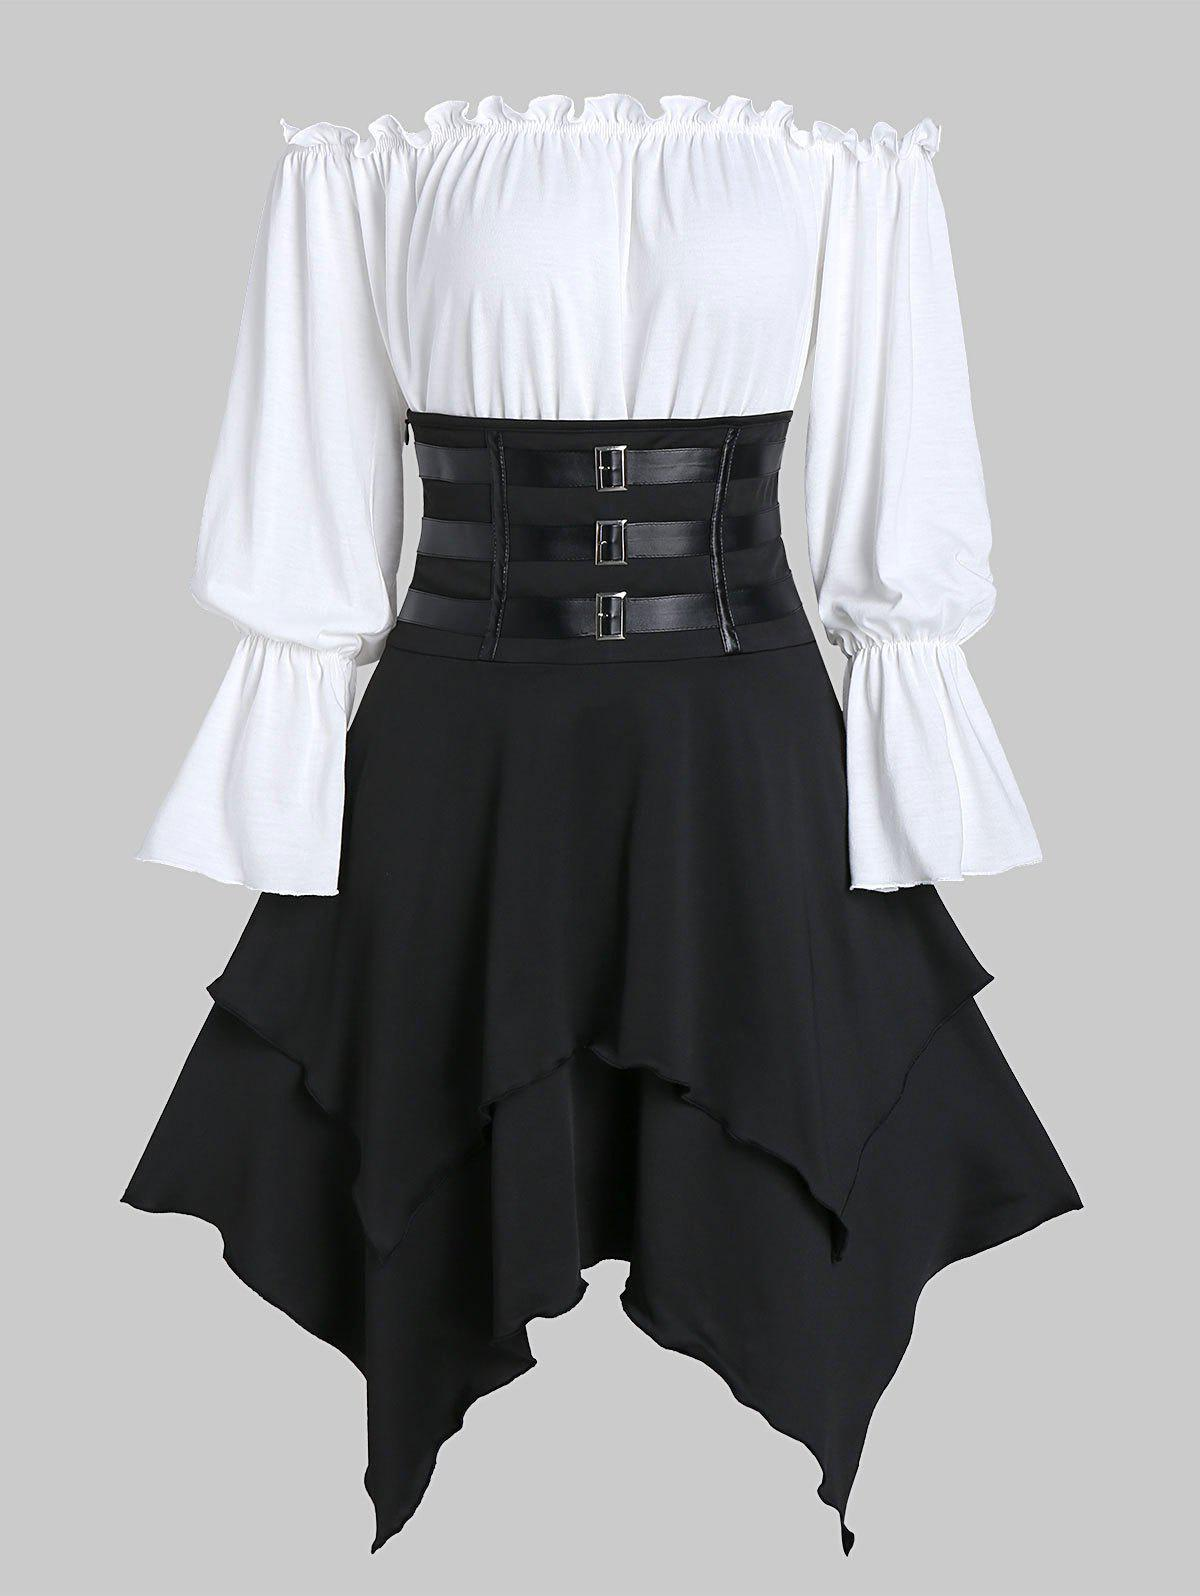 Online Buckle Strap Lace-up Layered Handkerchief Skirt with Poet Sleeve Bardot Top